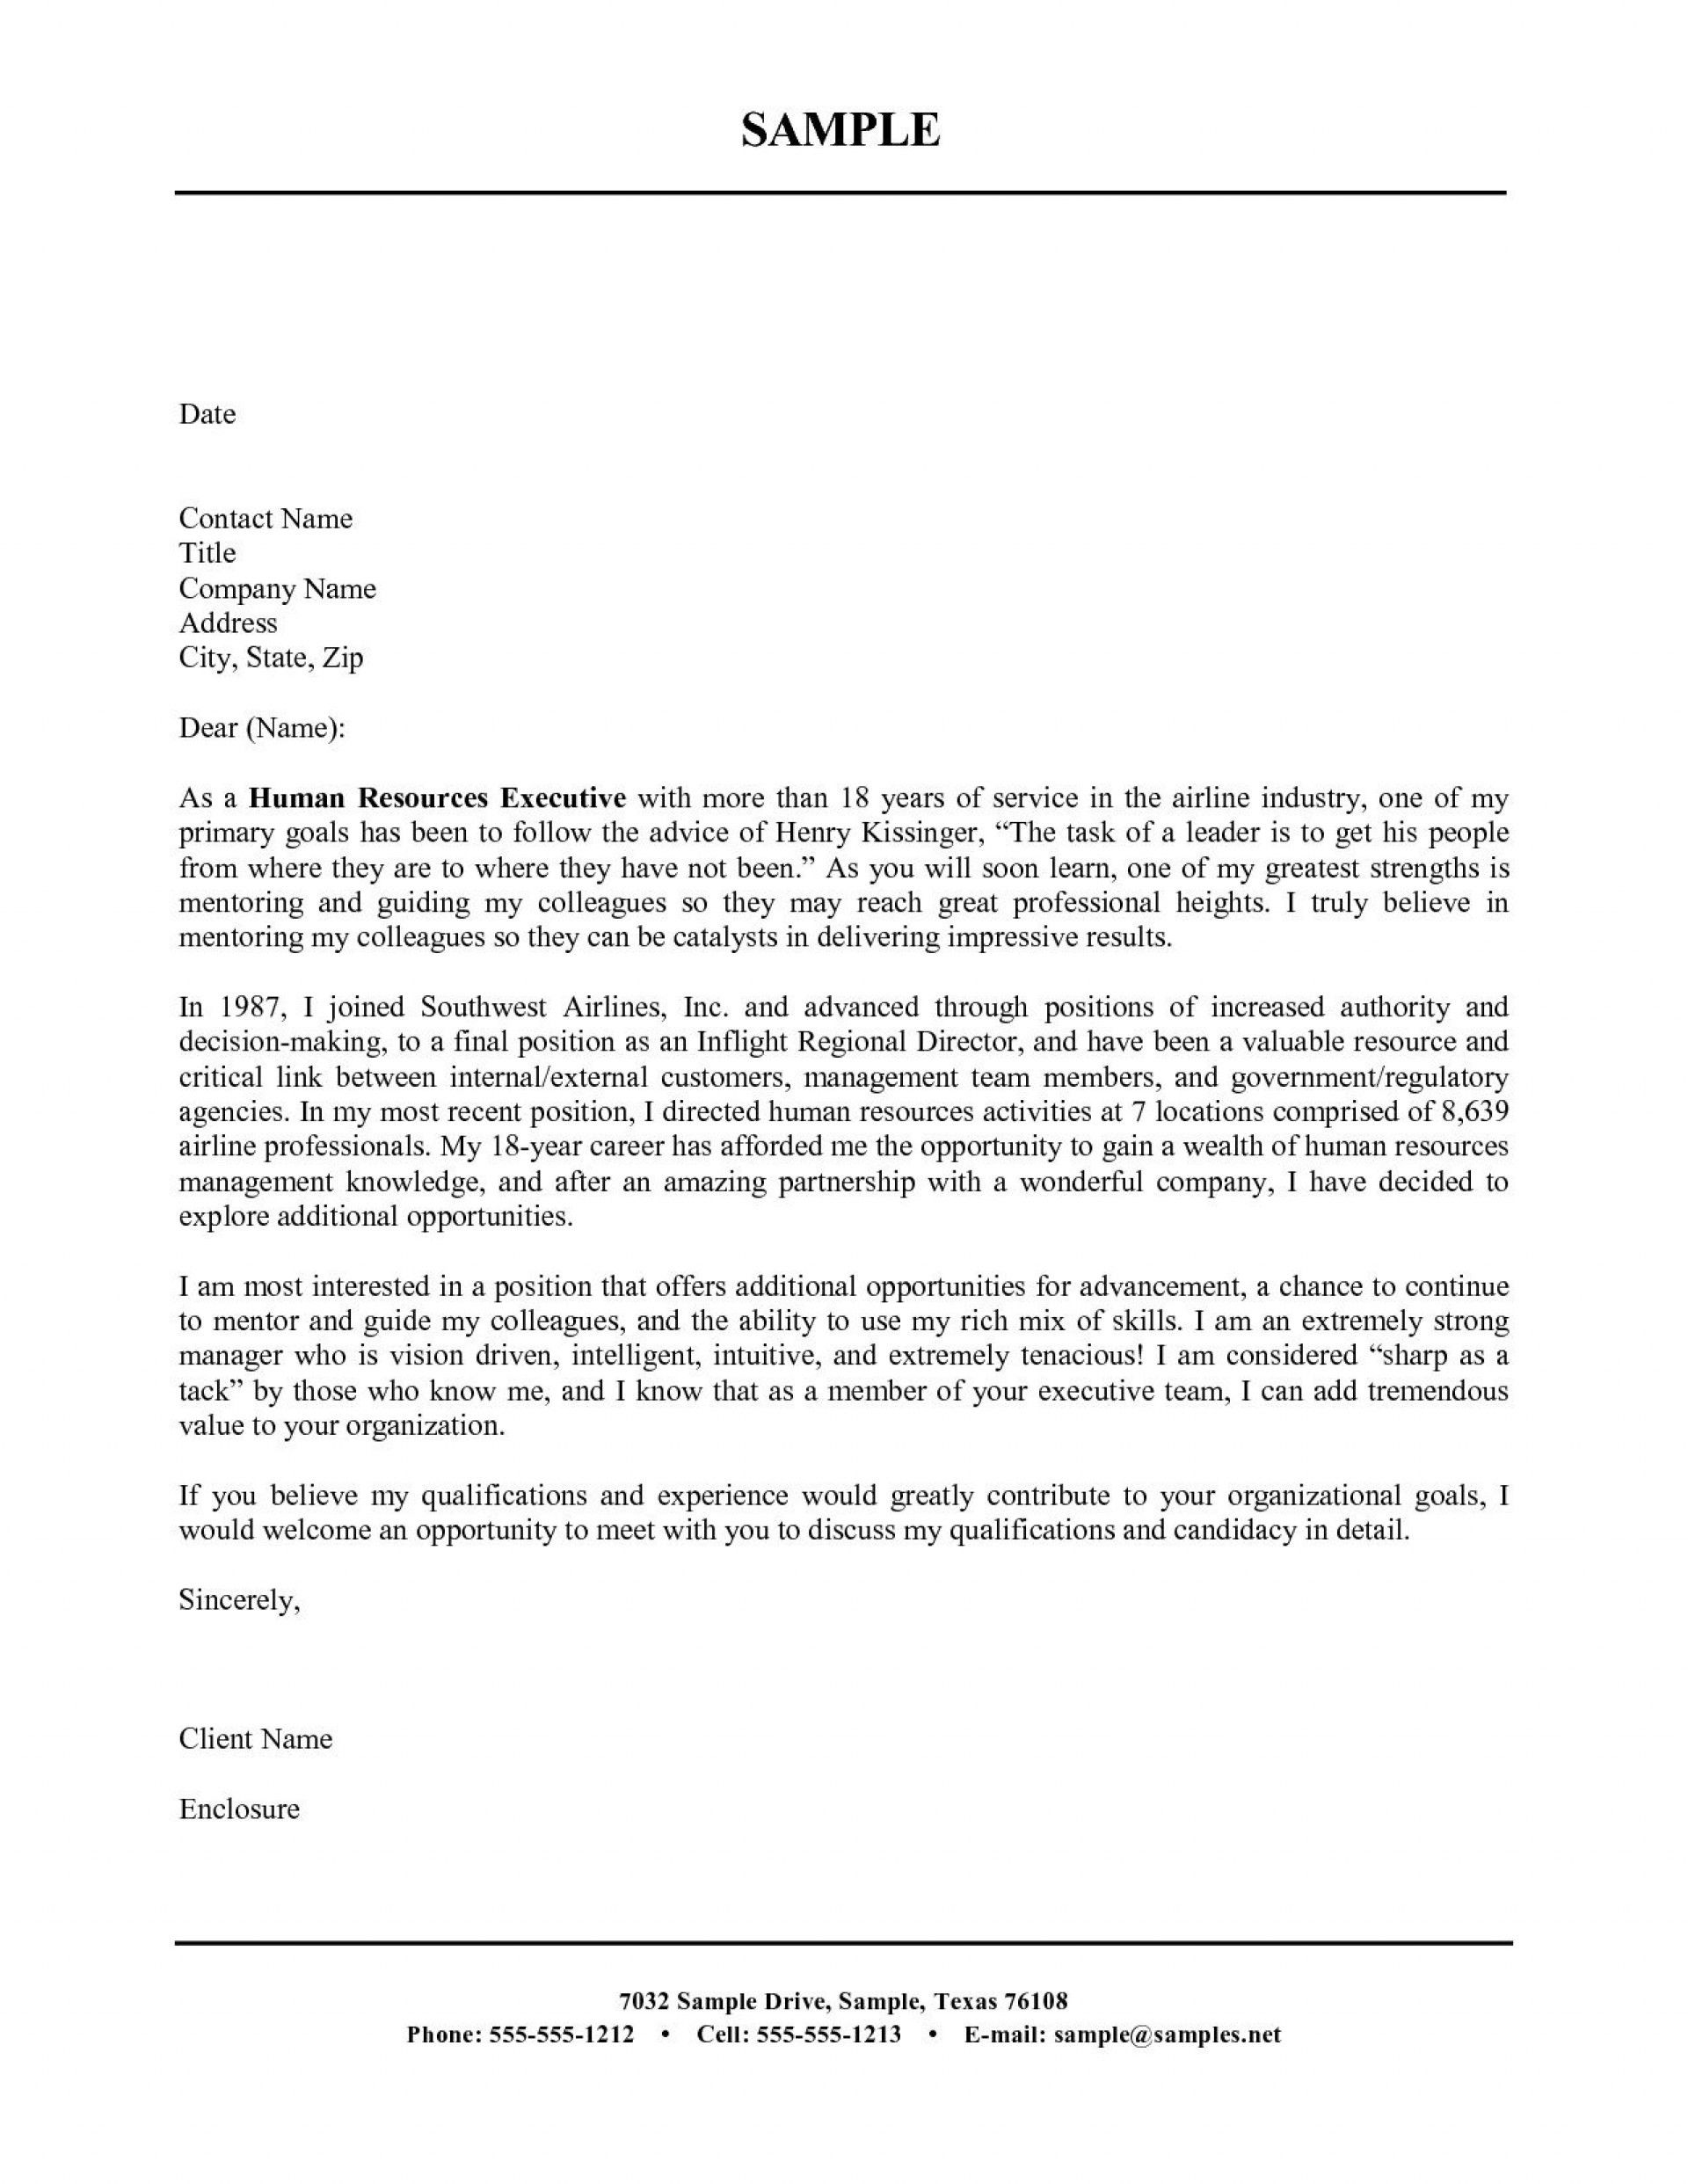 Free Cover Letter Template Word In 2021 Cover Letter For Resume Resume Cover Letter Examples Cover Letter Template Free